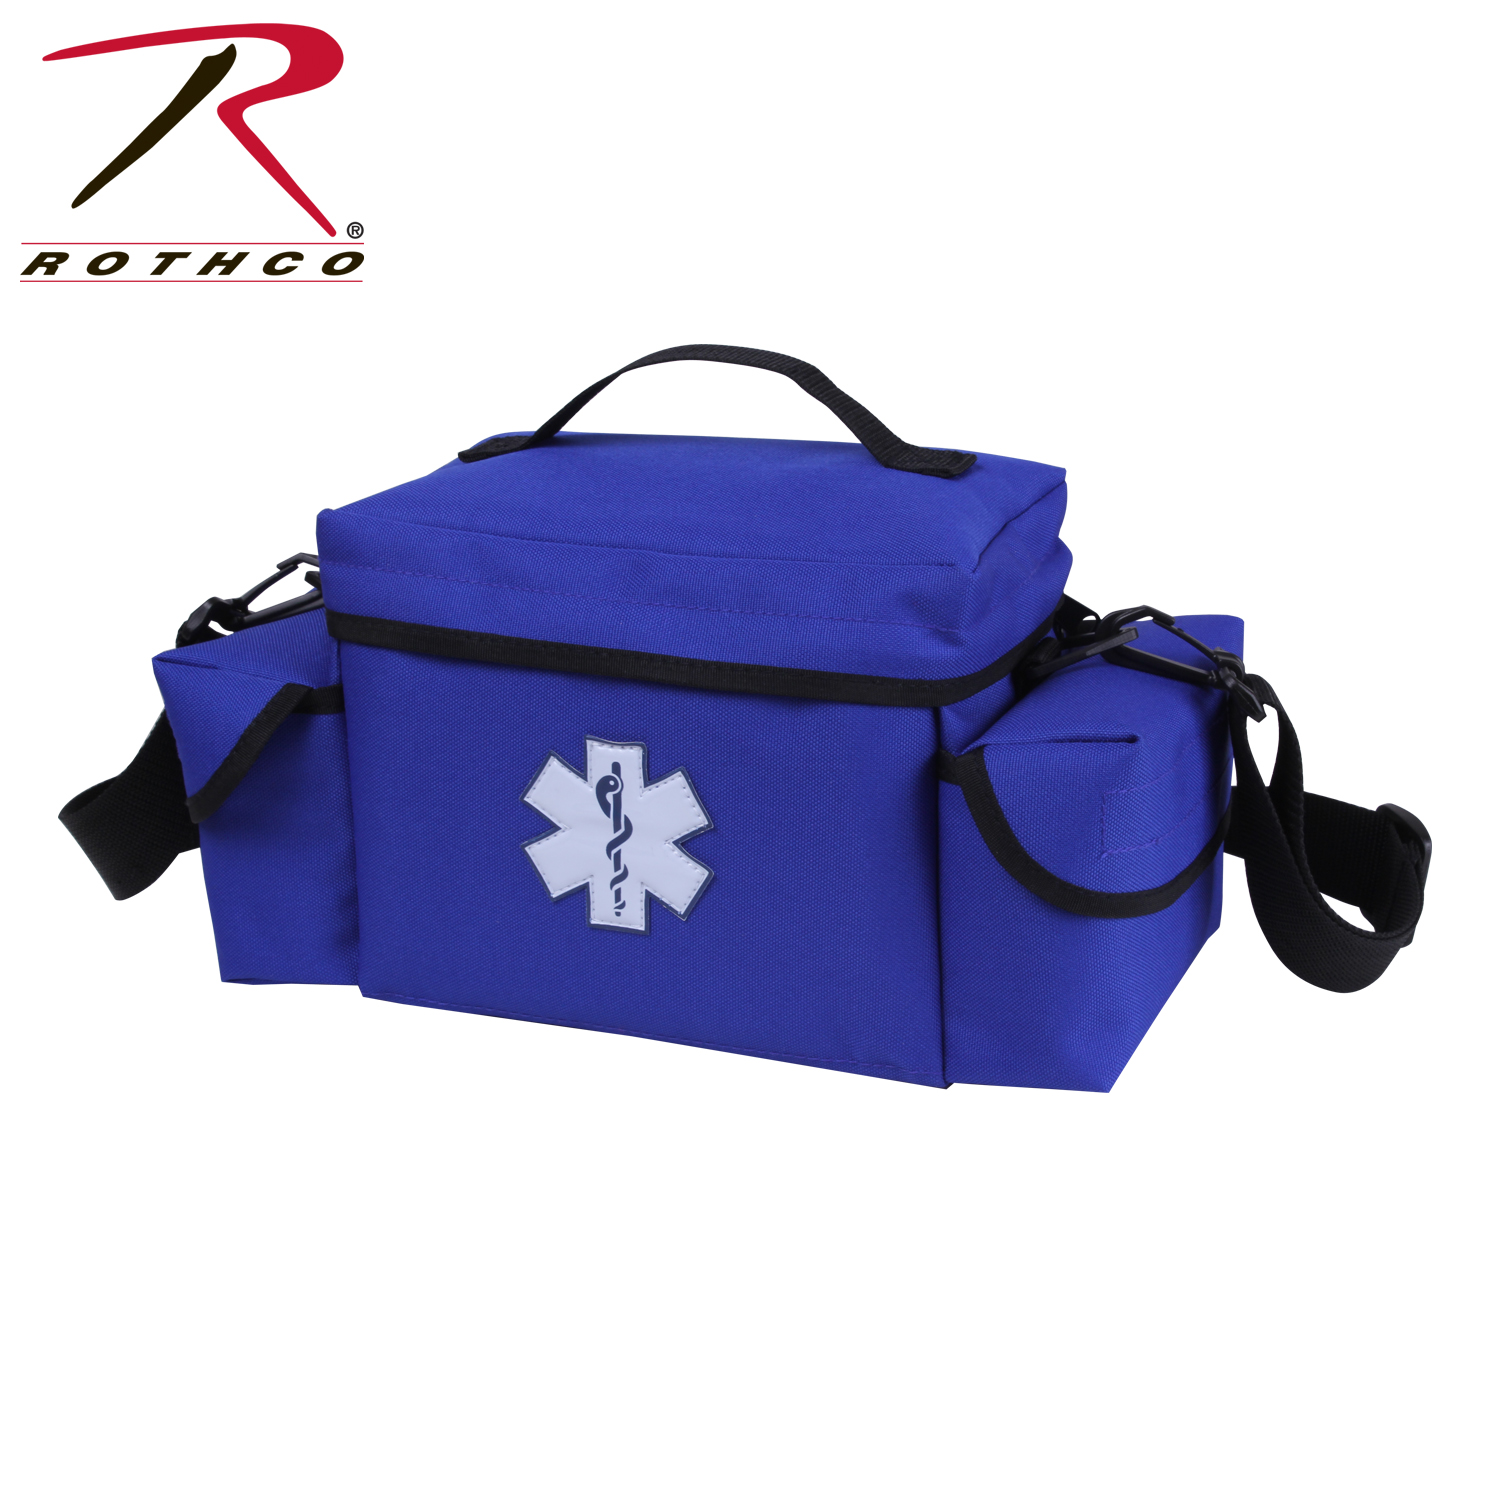 E M S Rescue Bag Emergency Medical Services Bags Medic